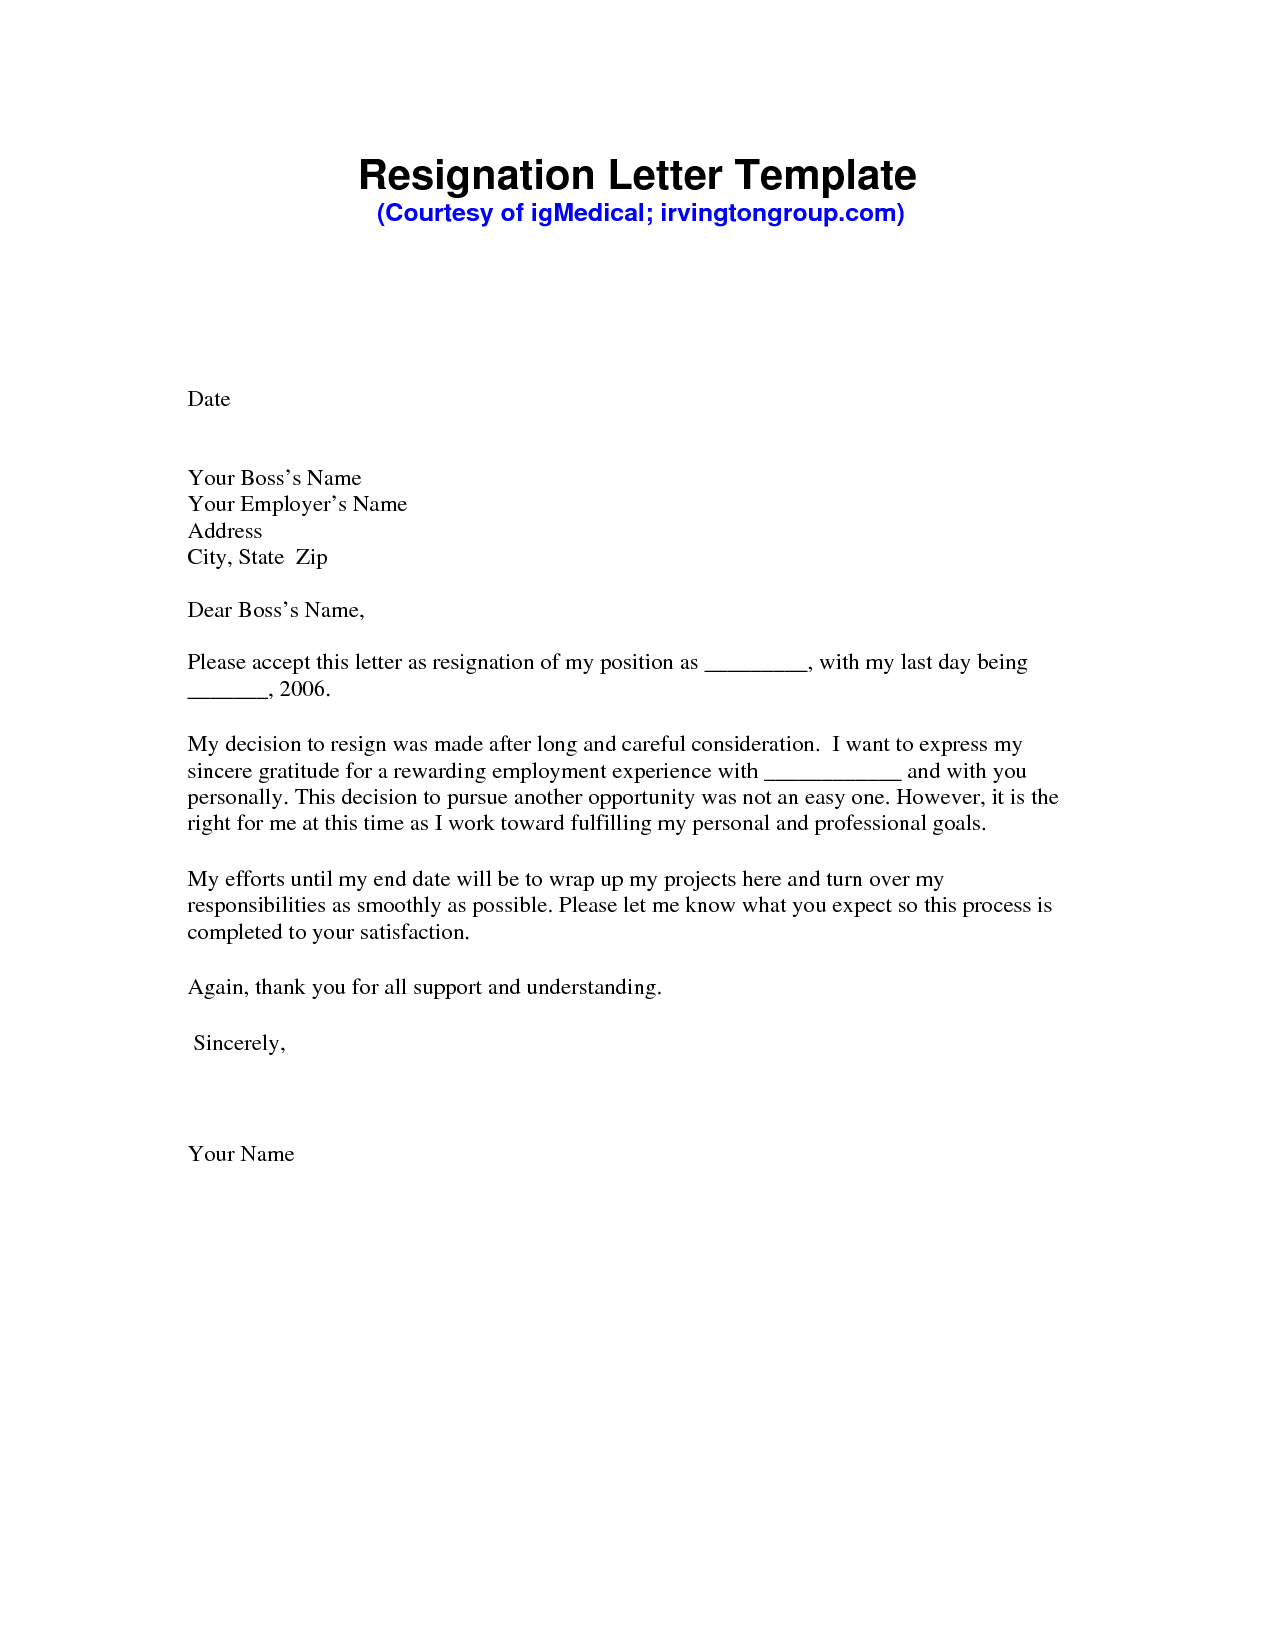 Microsoft Word Resignation Letter Template   Resignation Letter Sample Pdf Resignation  Letter